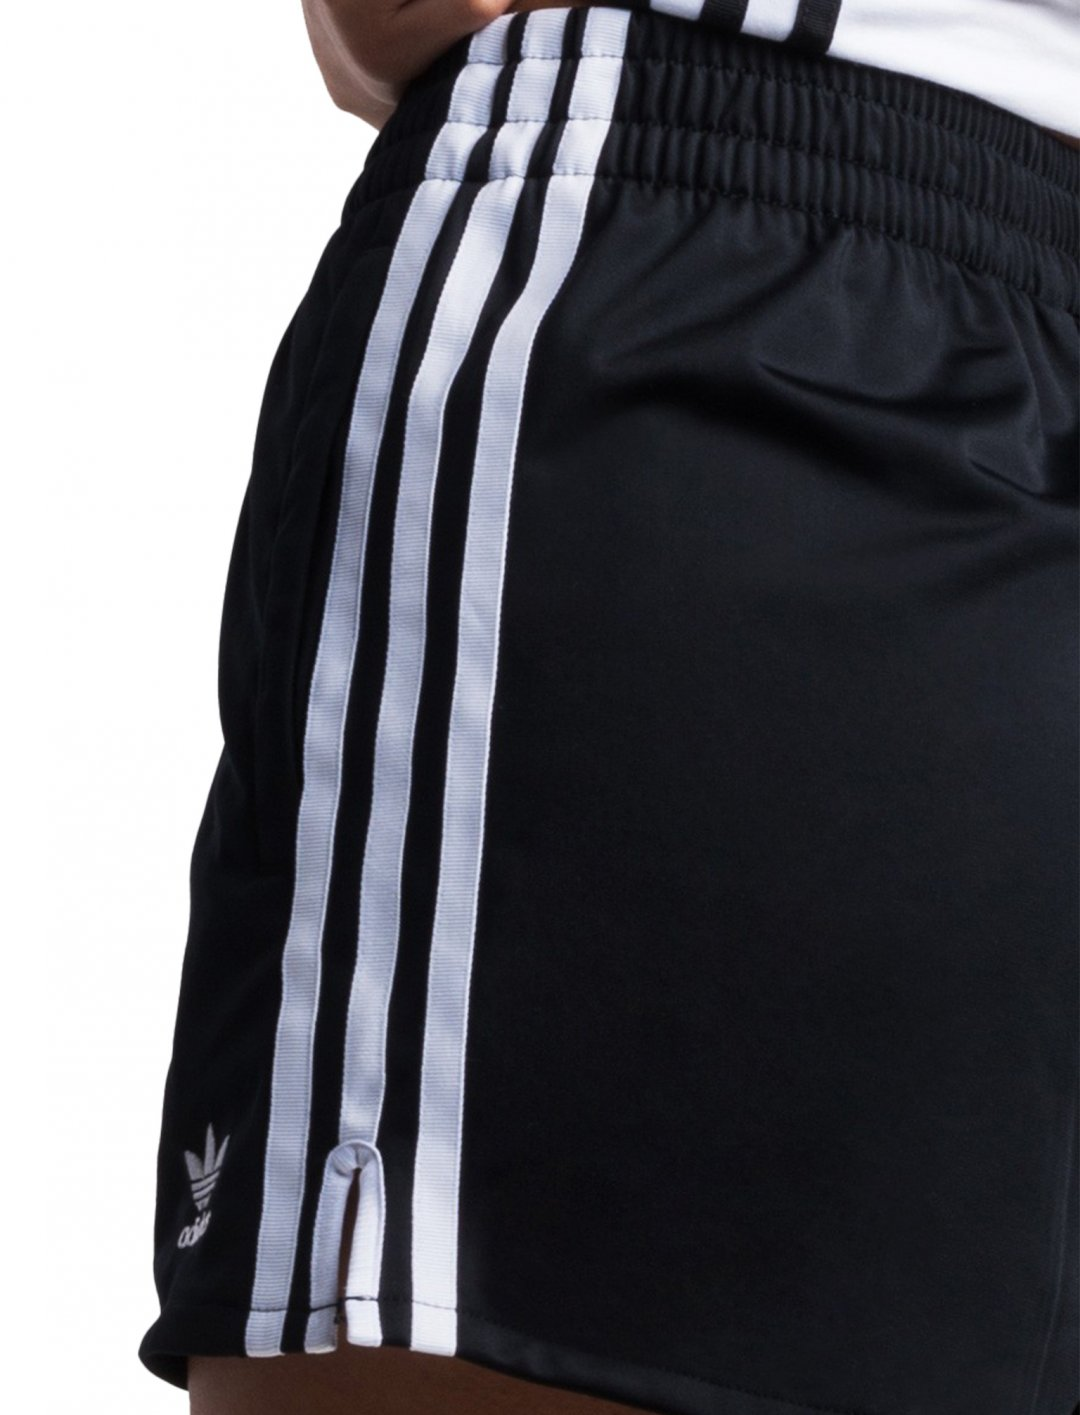 "Adidas 3 Stripes Shorts {""id"":5,""product_section_id"":1,""name"":""Clothing"",""order"":5} Adidas"